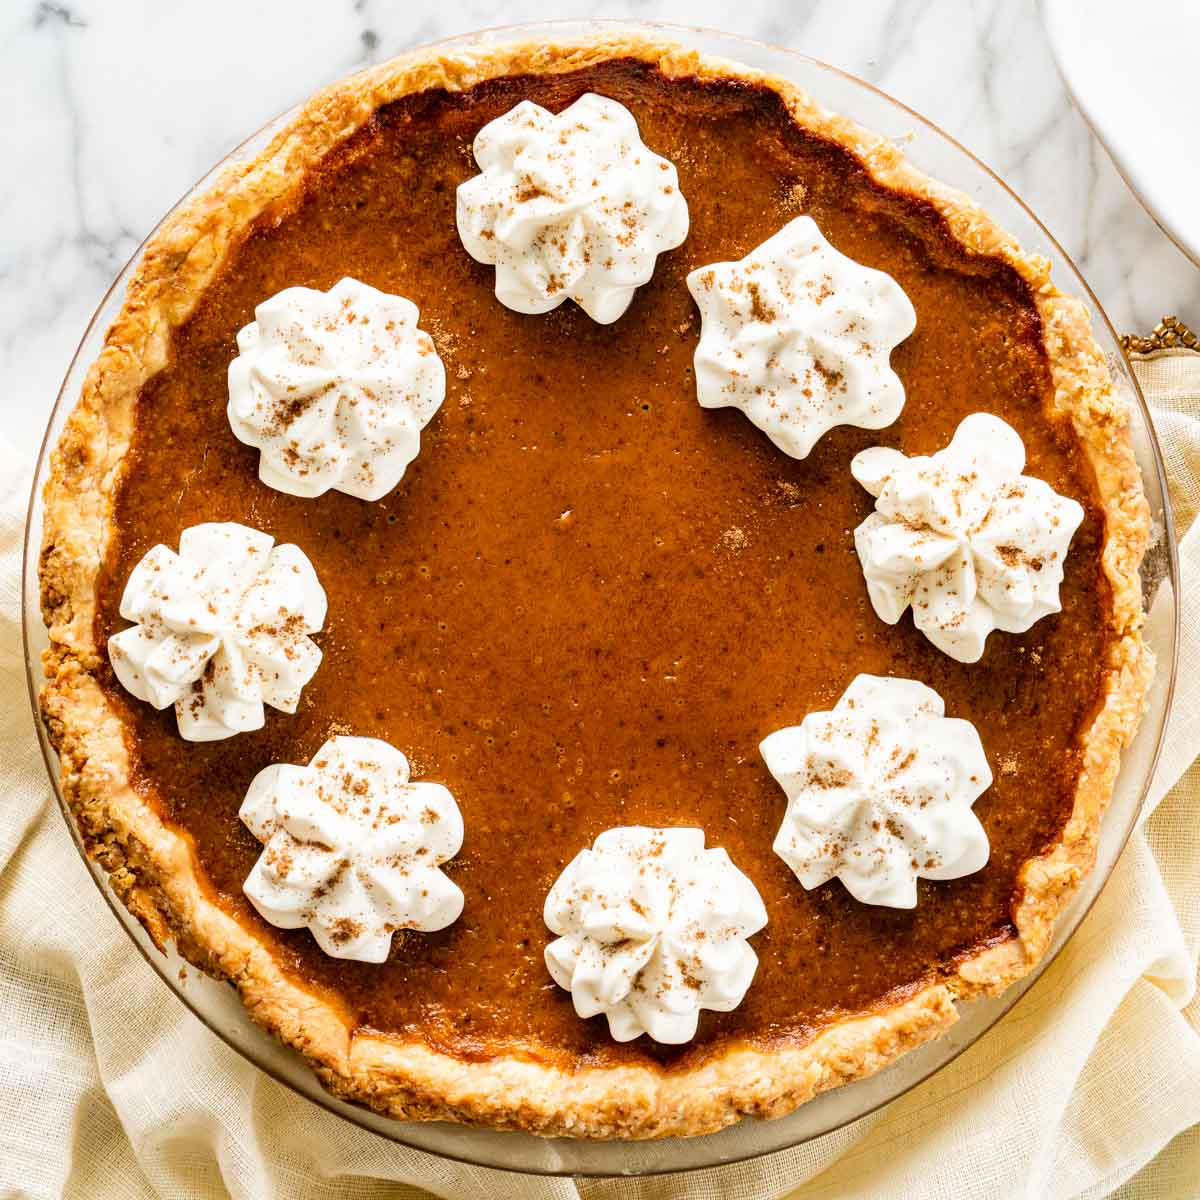 overhead shot of a freshly baked pumpkin pie with whipped cream topping.